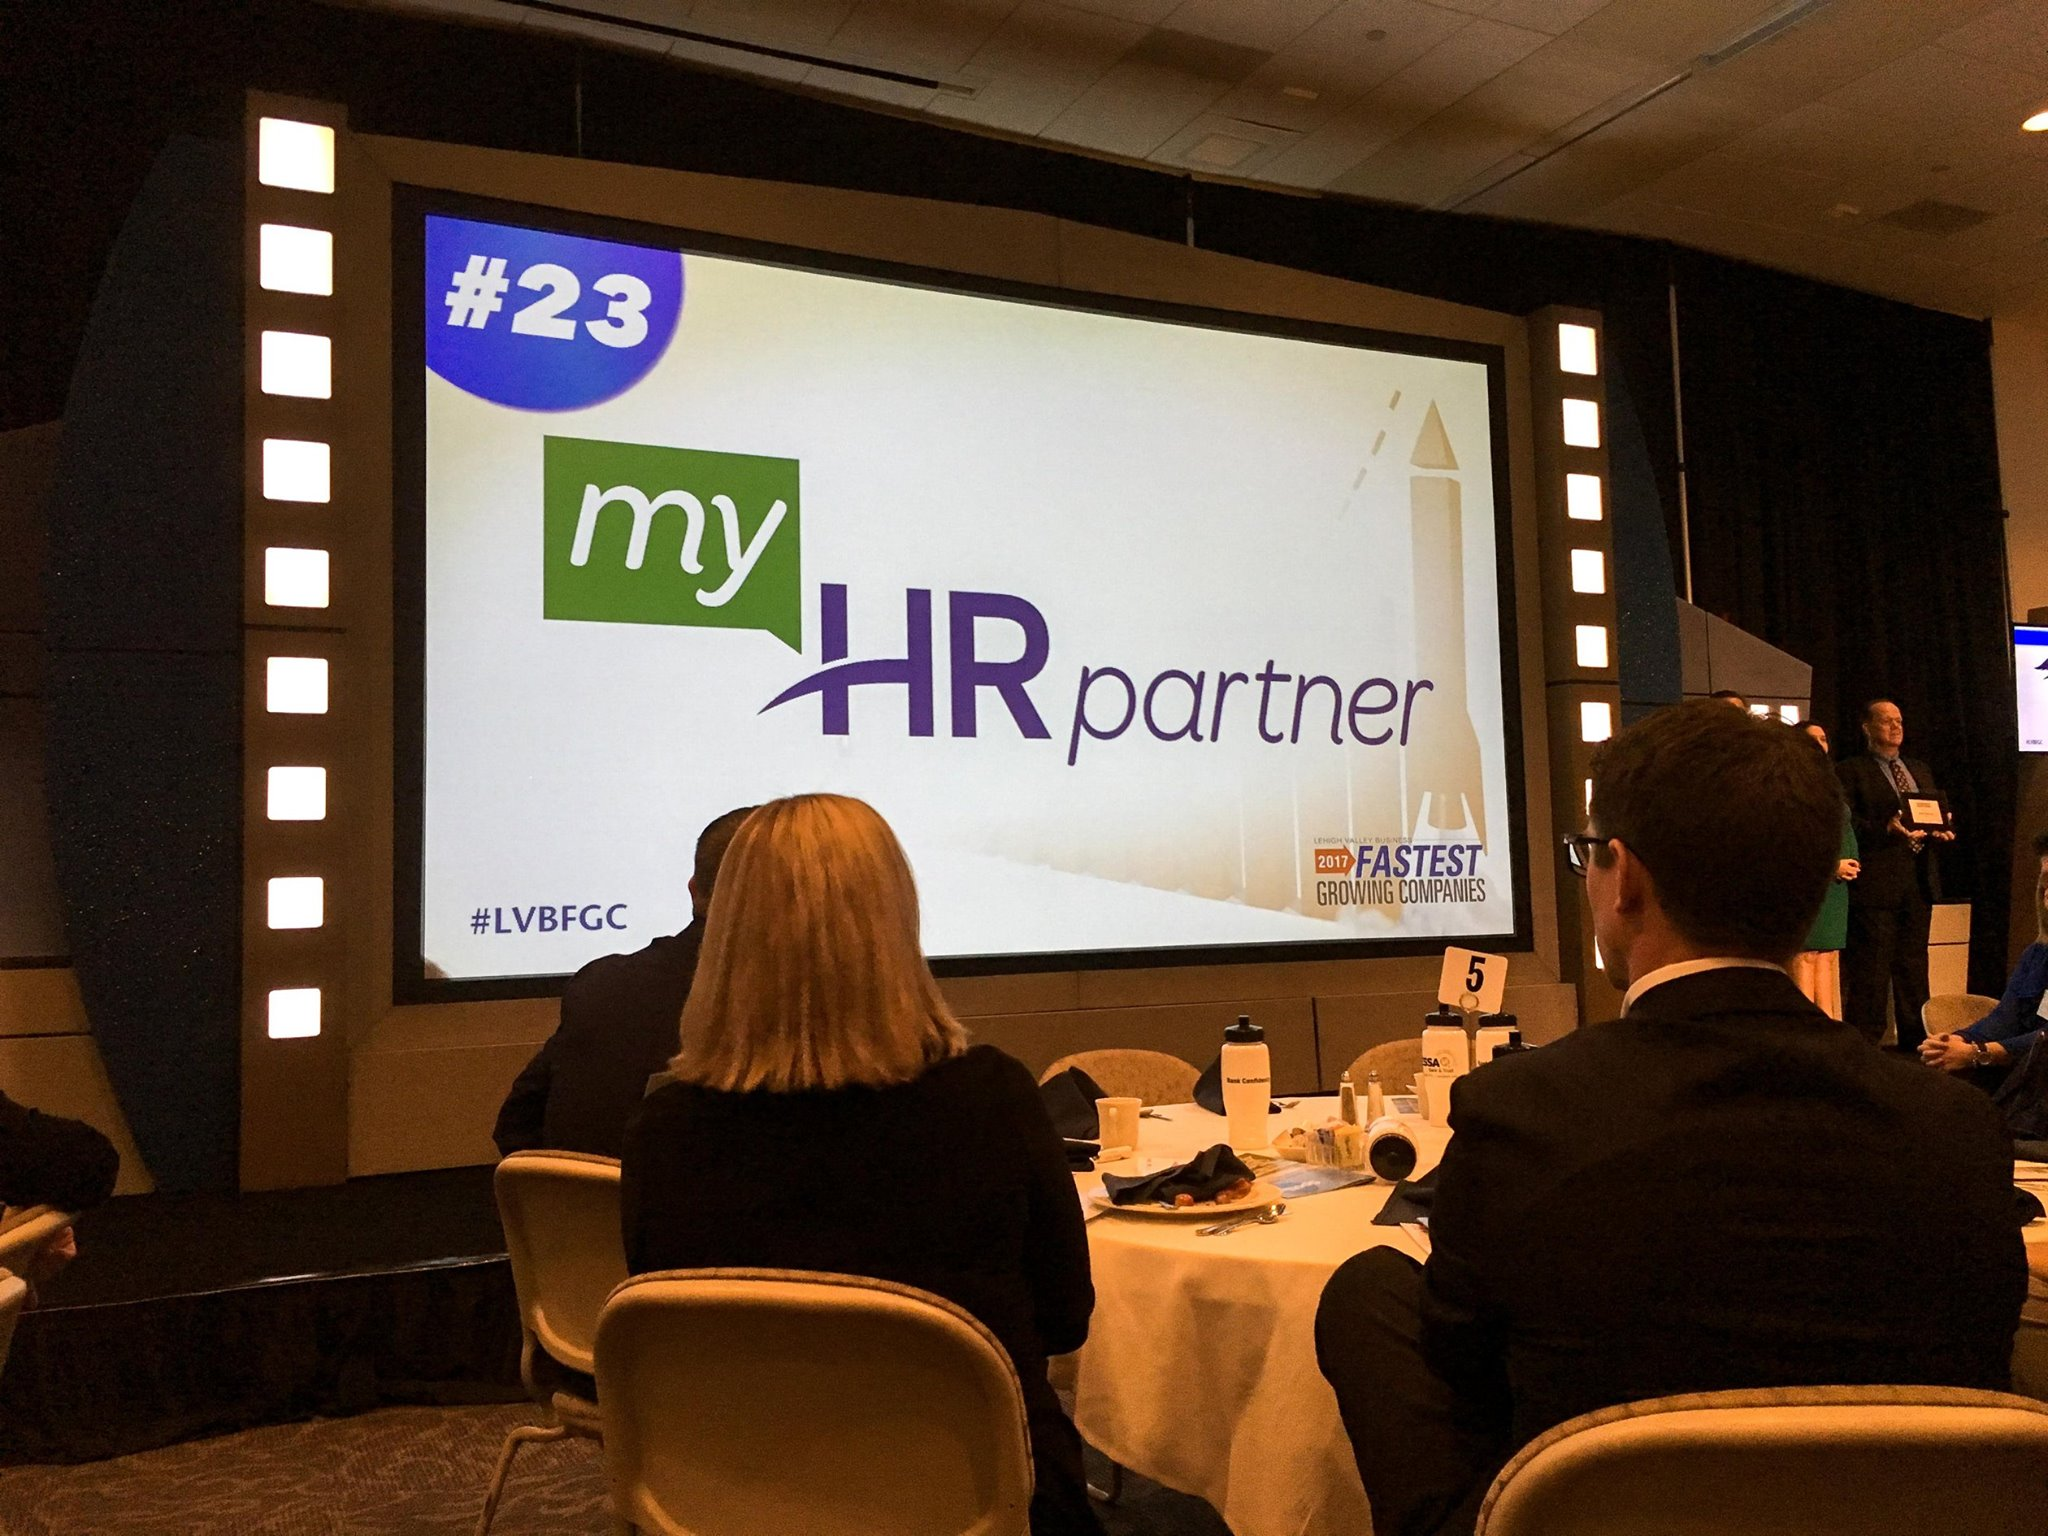 myHR Partner featured on a presentation for fastest growing companies